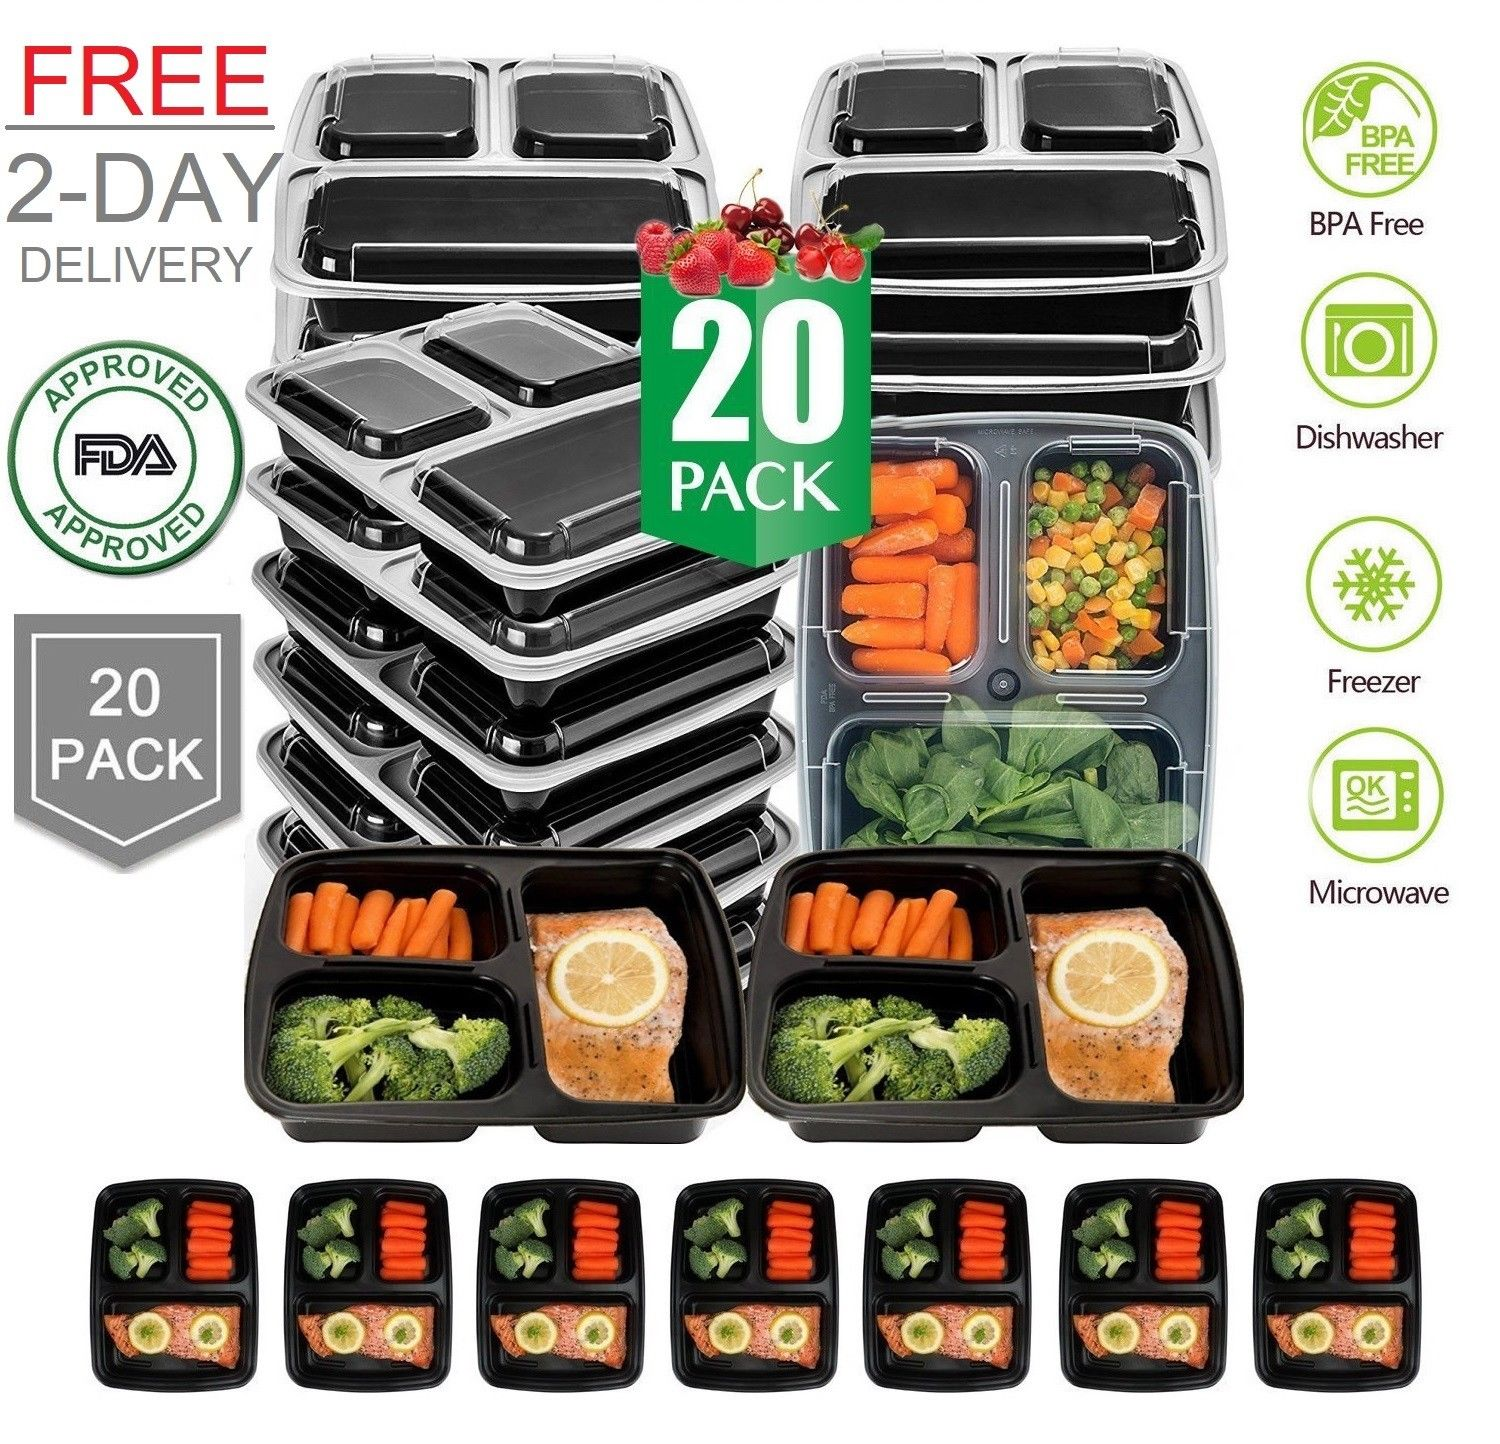 20 Pack Meal Prep Containers Food Storage 3 Compartment Reusable Microwave Safe 1